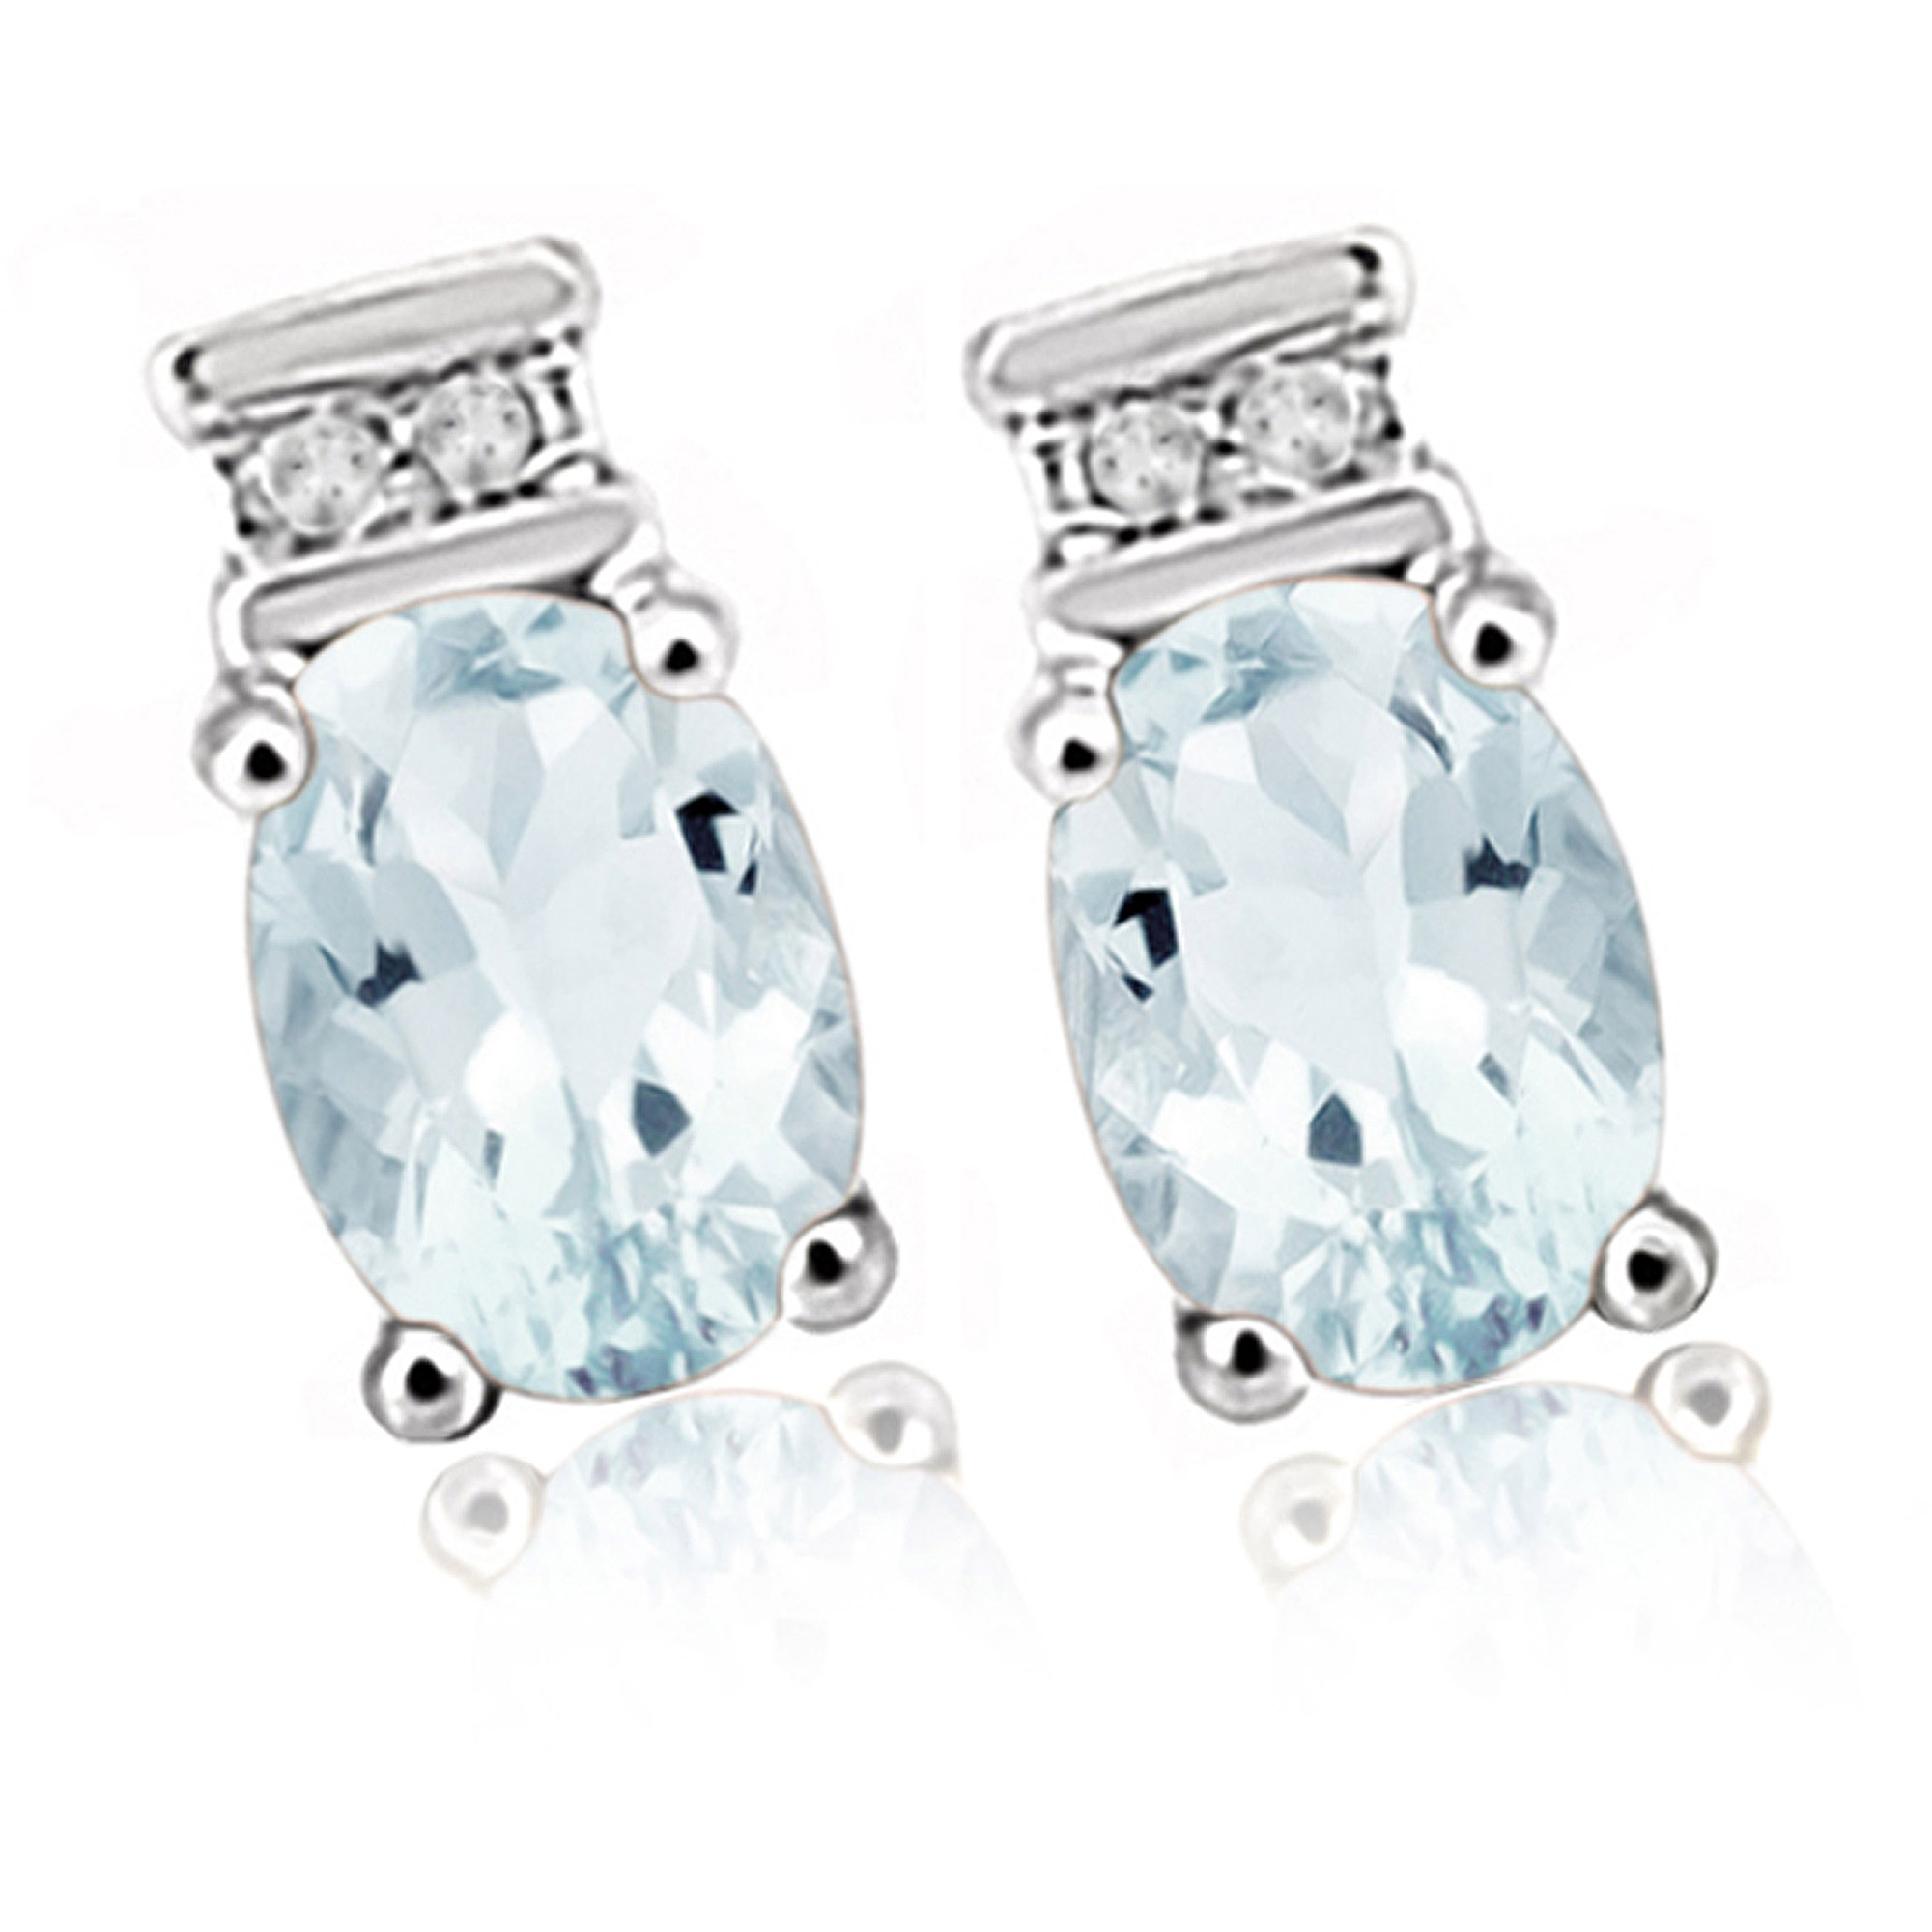 JewelersClub 0.88 Carat Aquamarine Gemstone and 1/20 Carat White Diamond Women's Sterling Silver Earrings